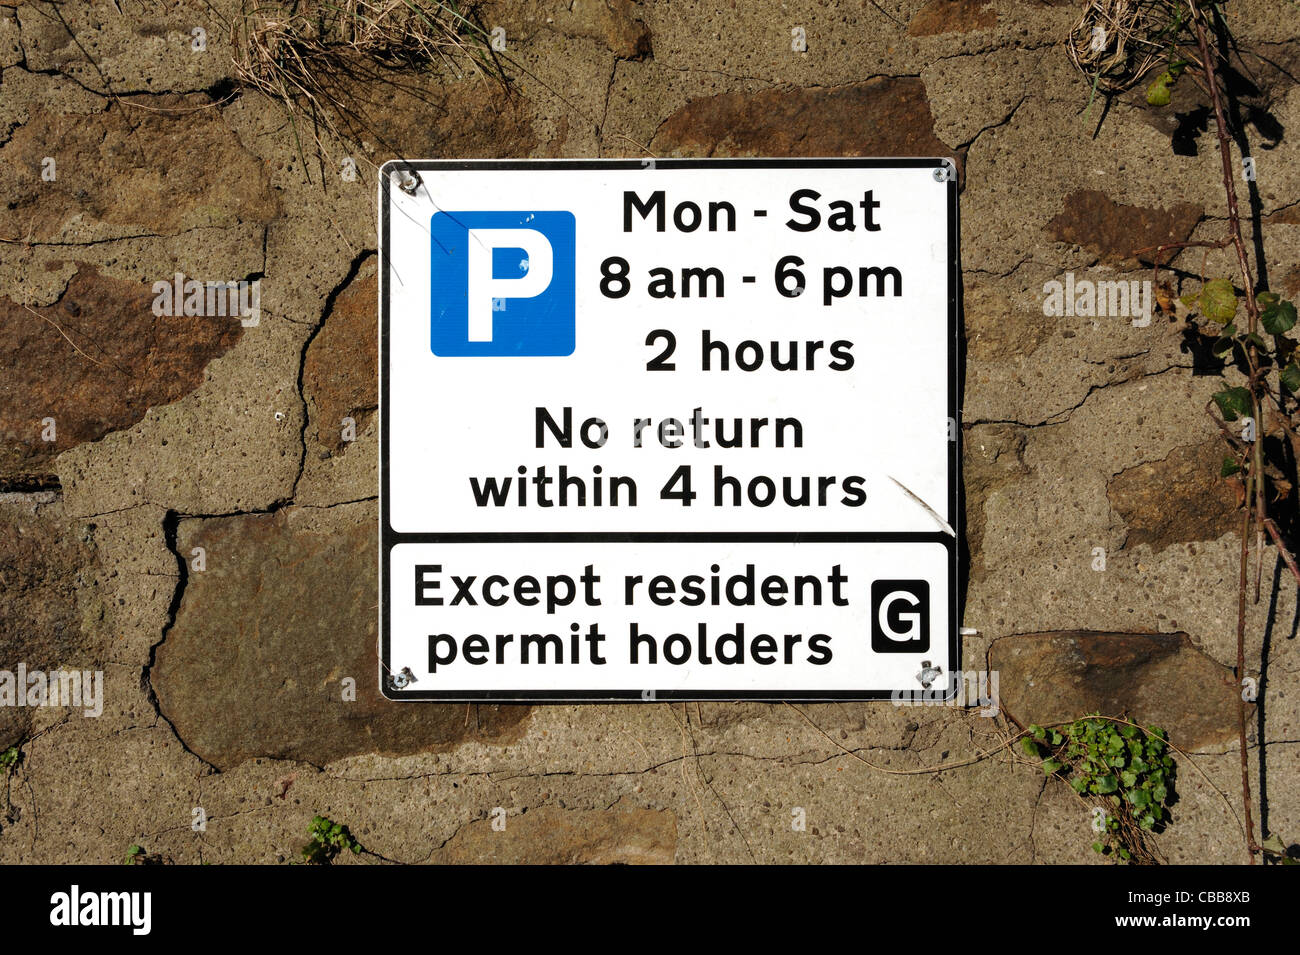 Car park sign for residents parking - Stock Image